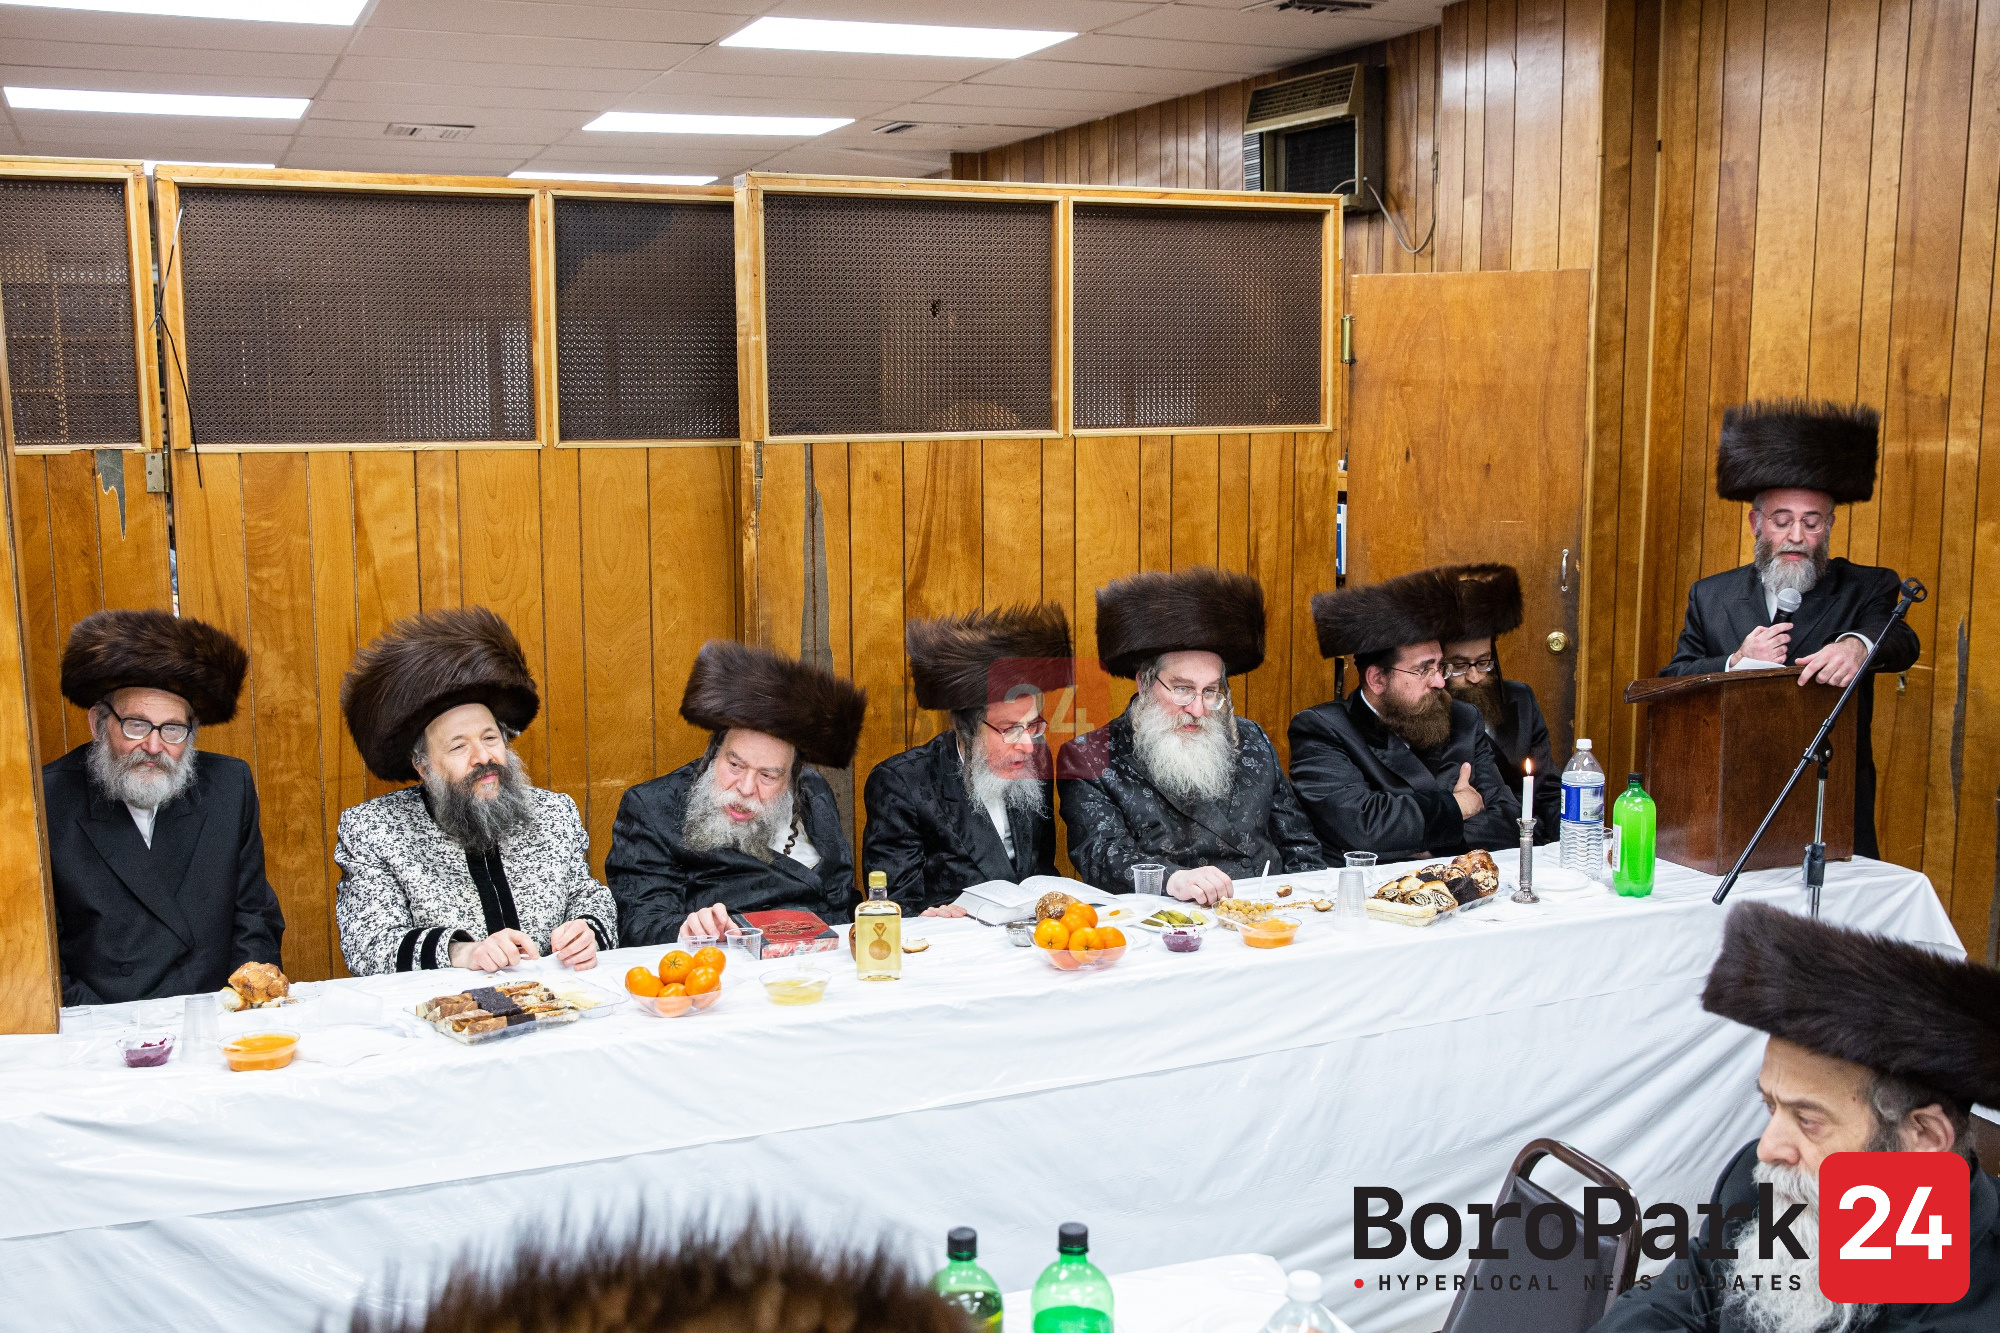 Melavah Malke for the Beis Medresh Beis Yosef Dombrova in Boro Park